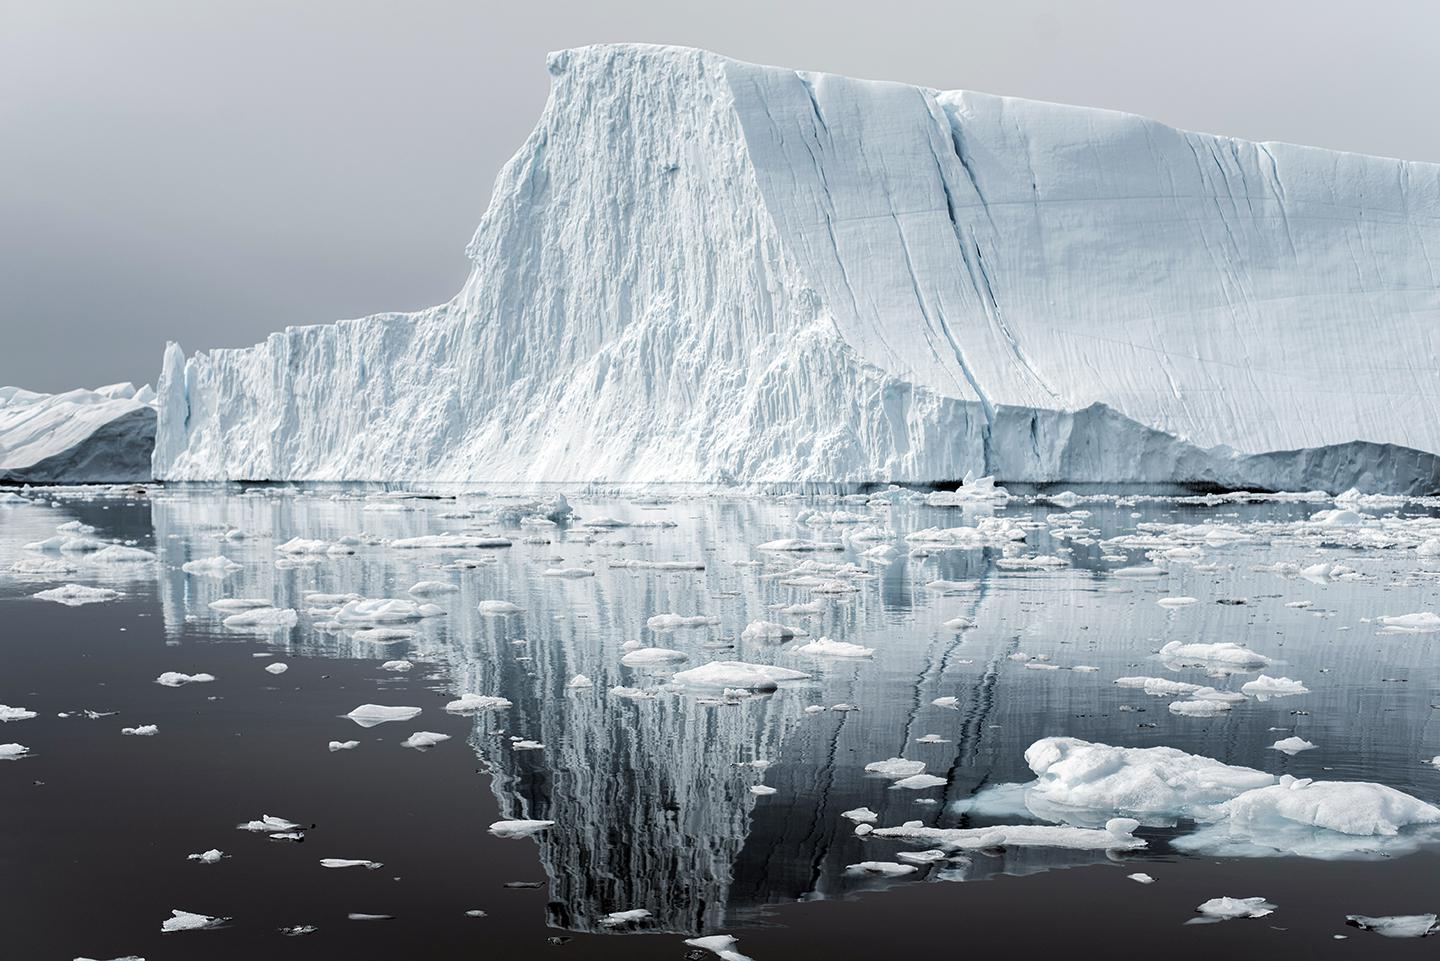 Greenland loses about 250 gigatons of ice each year. If all of it were to melt, sea levels would rise by 21 feet.